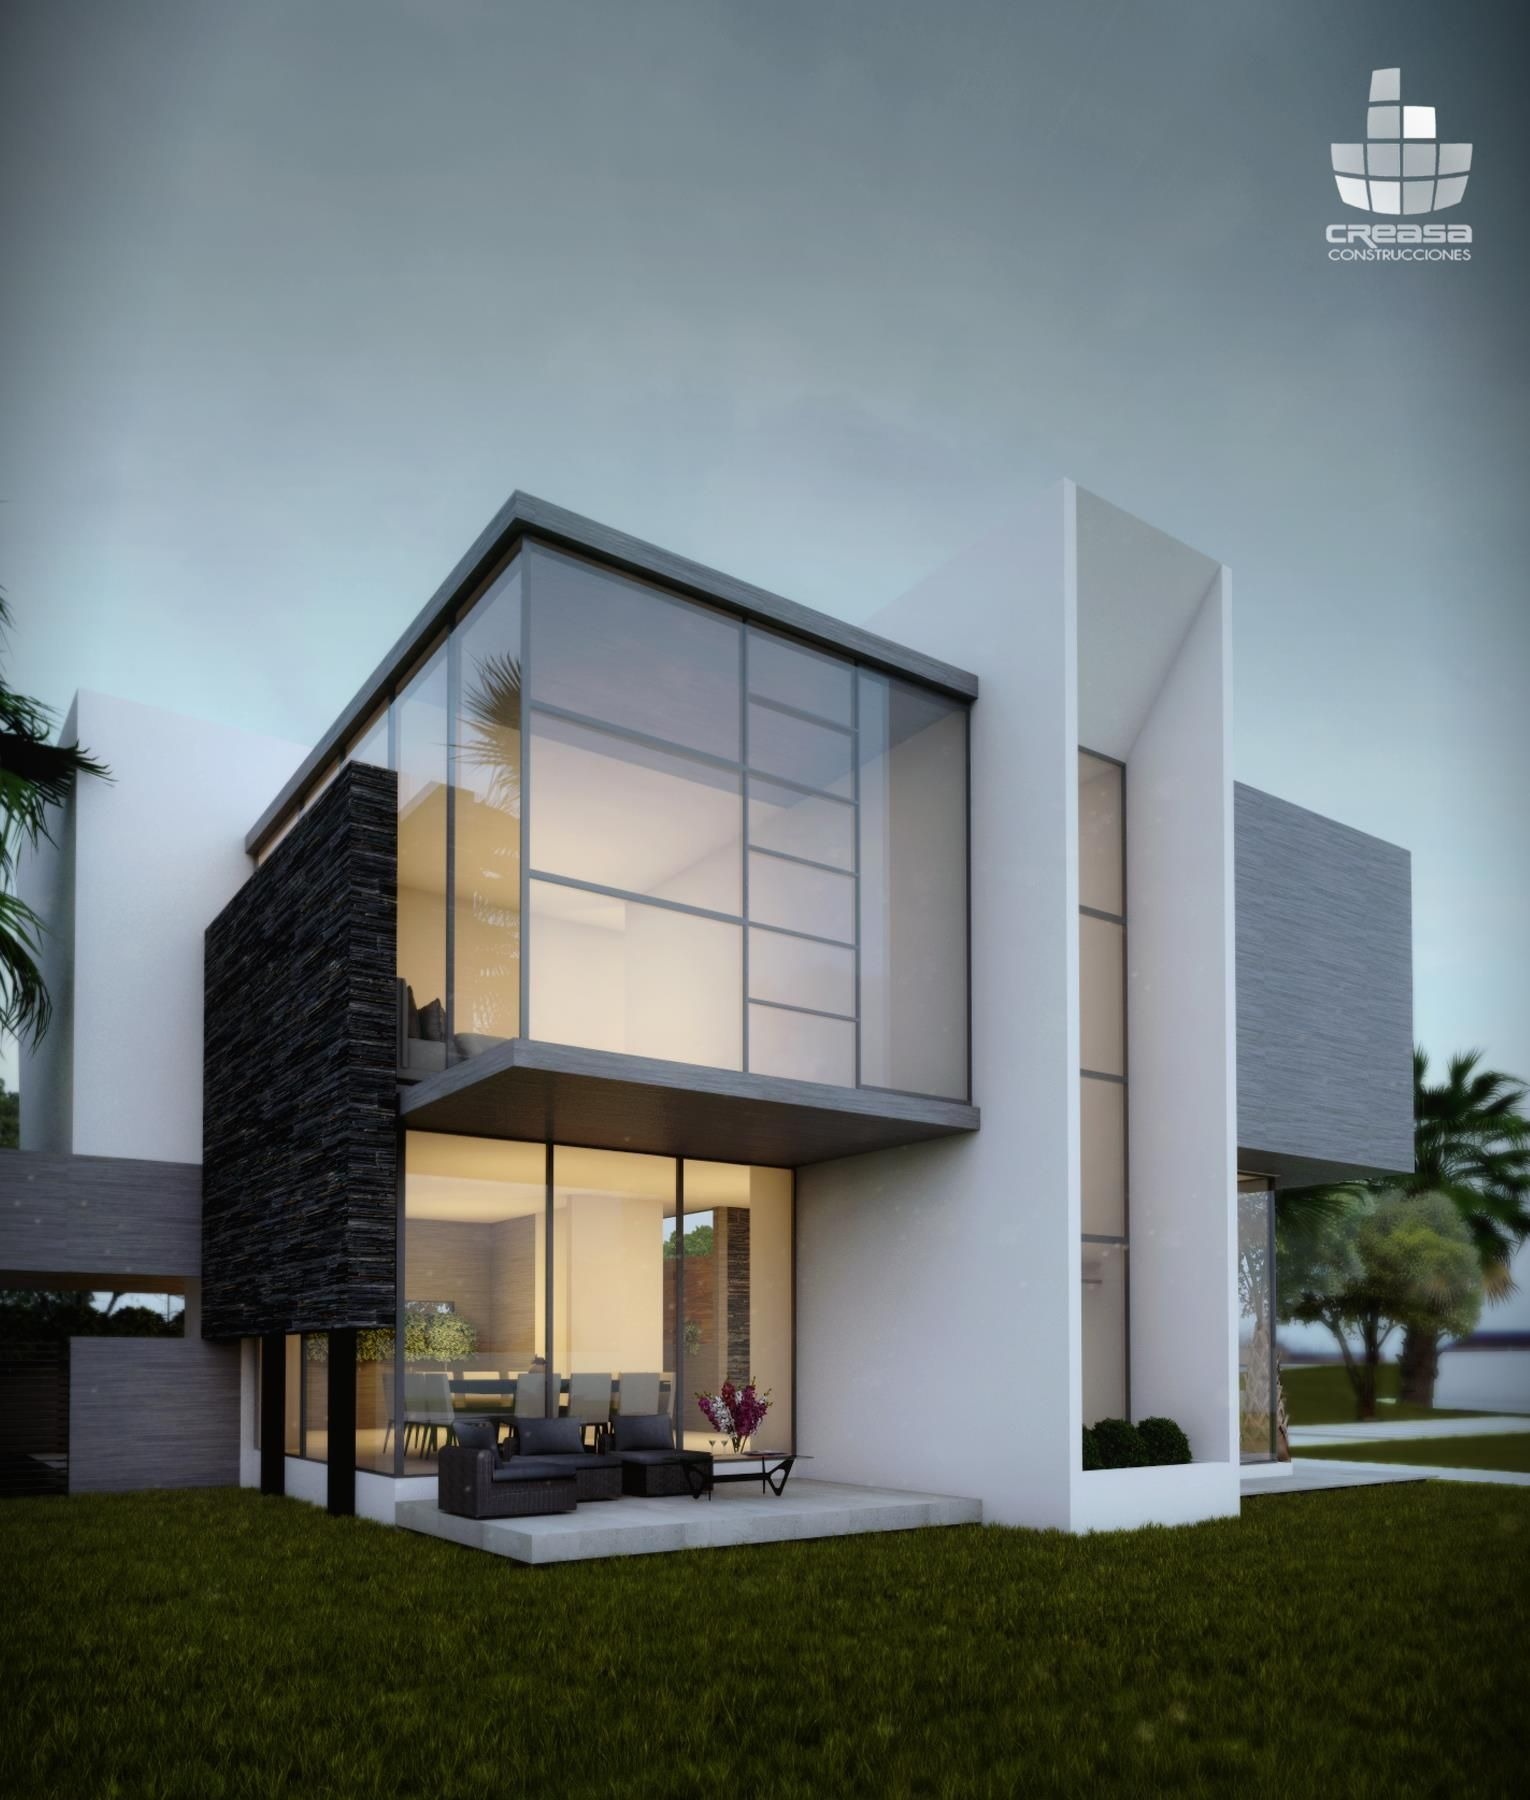 Creasa modern architecture pinterest villas house for Villa moderne design